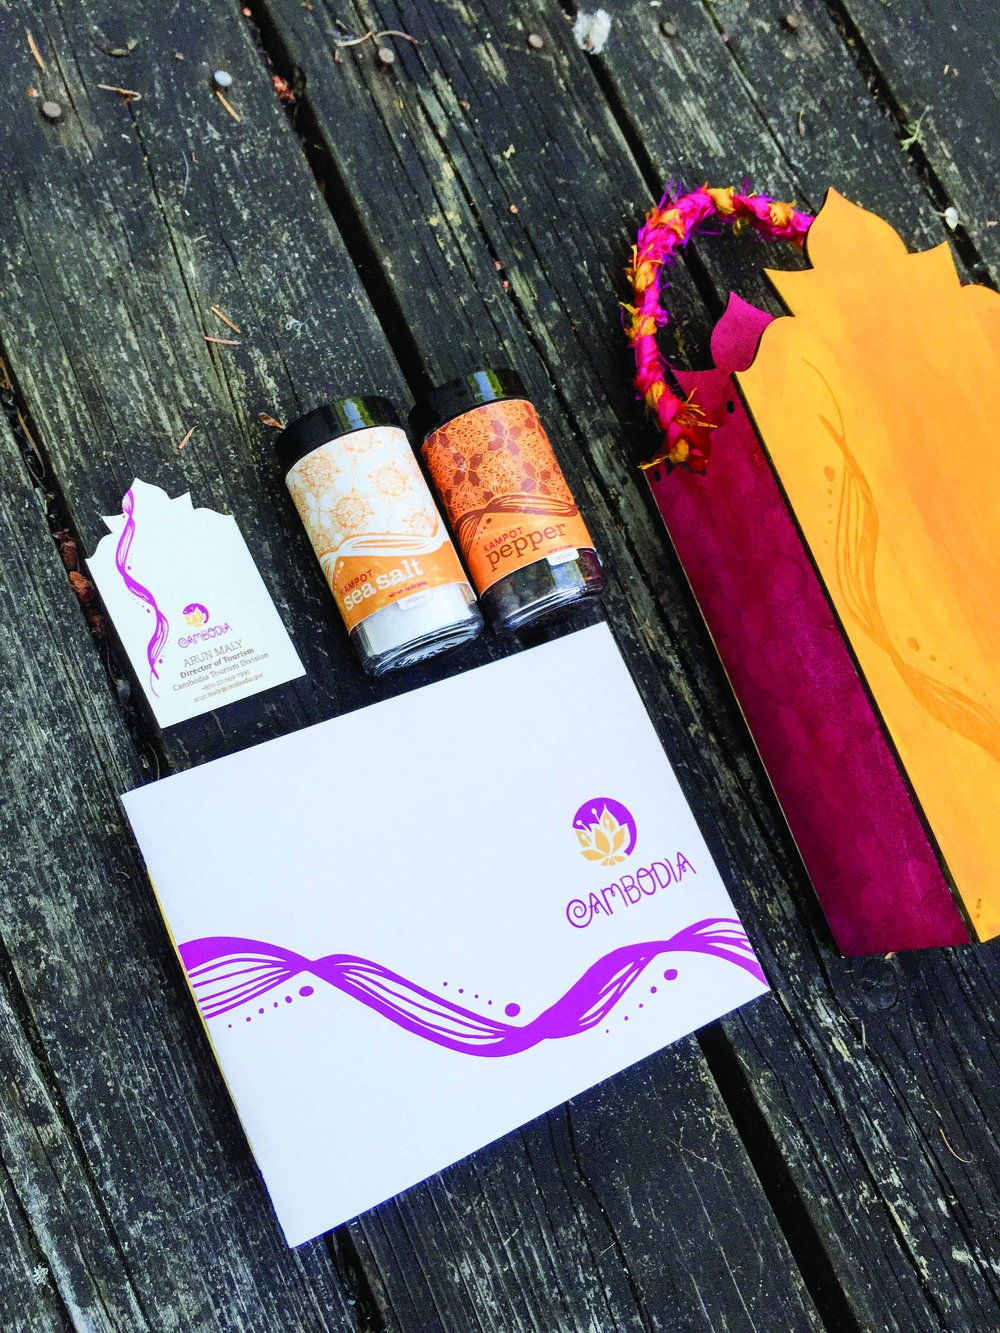 Brand book, business card, spices and laser etched and hand-painted gift bag with silk braided handles.